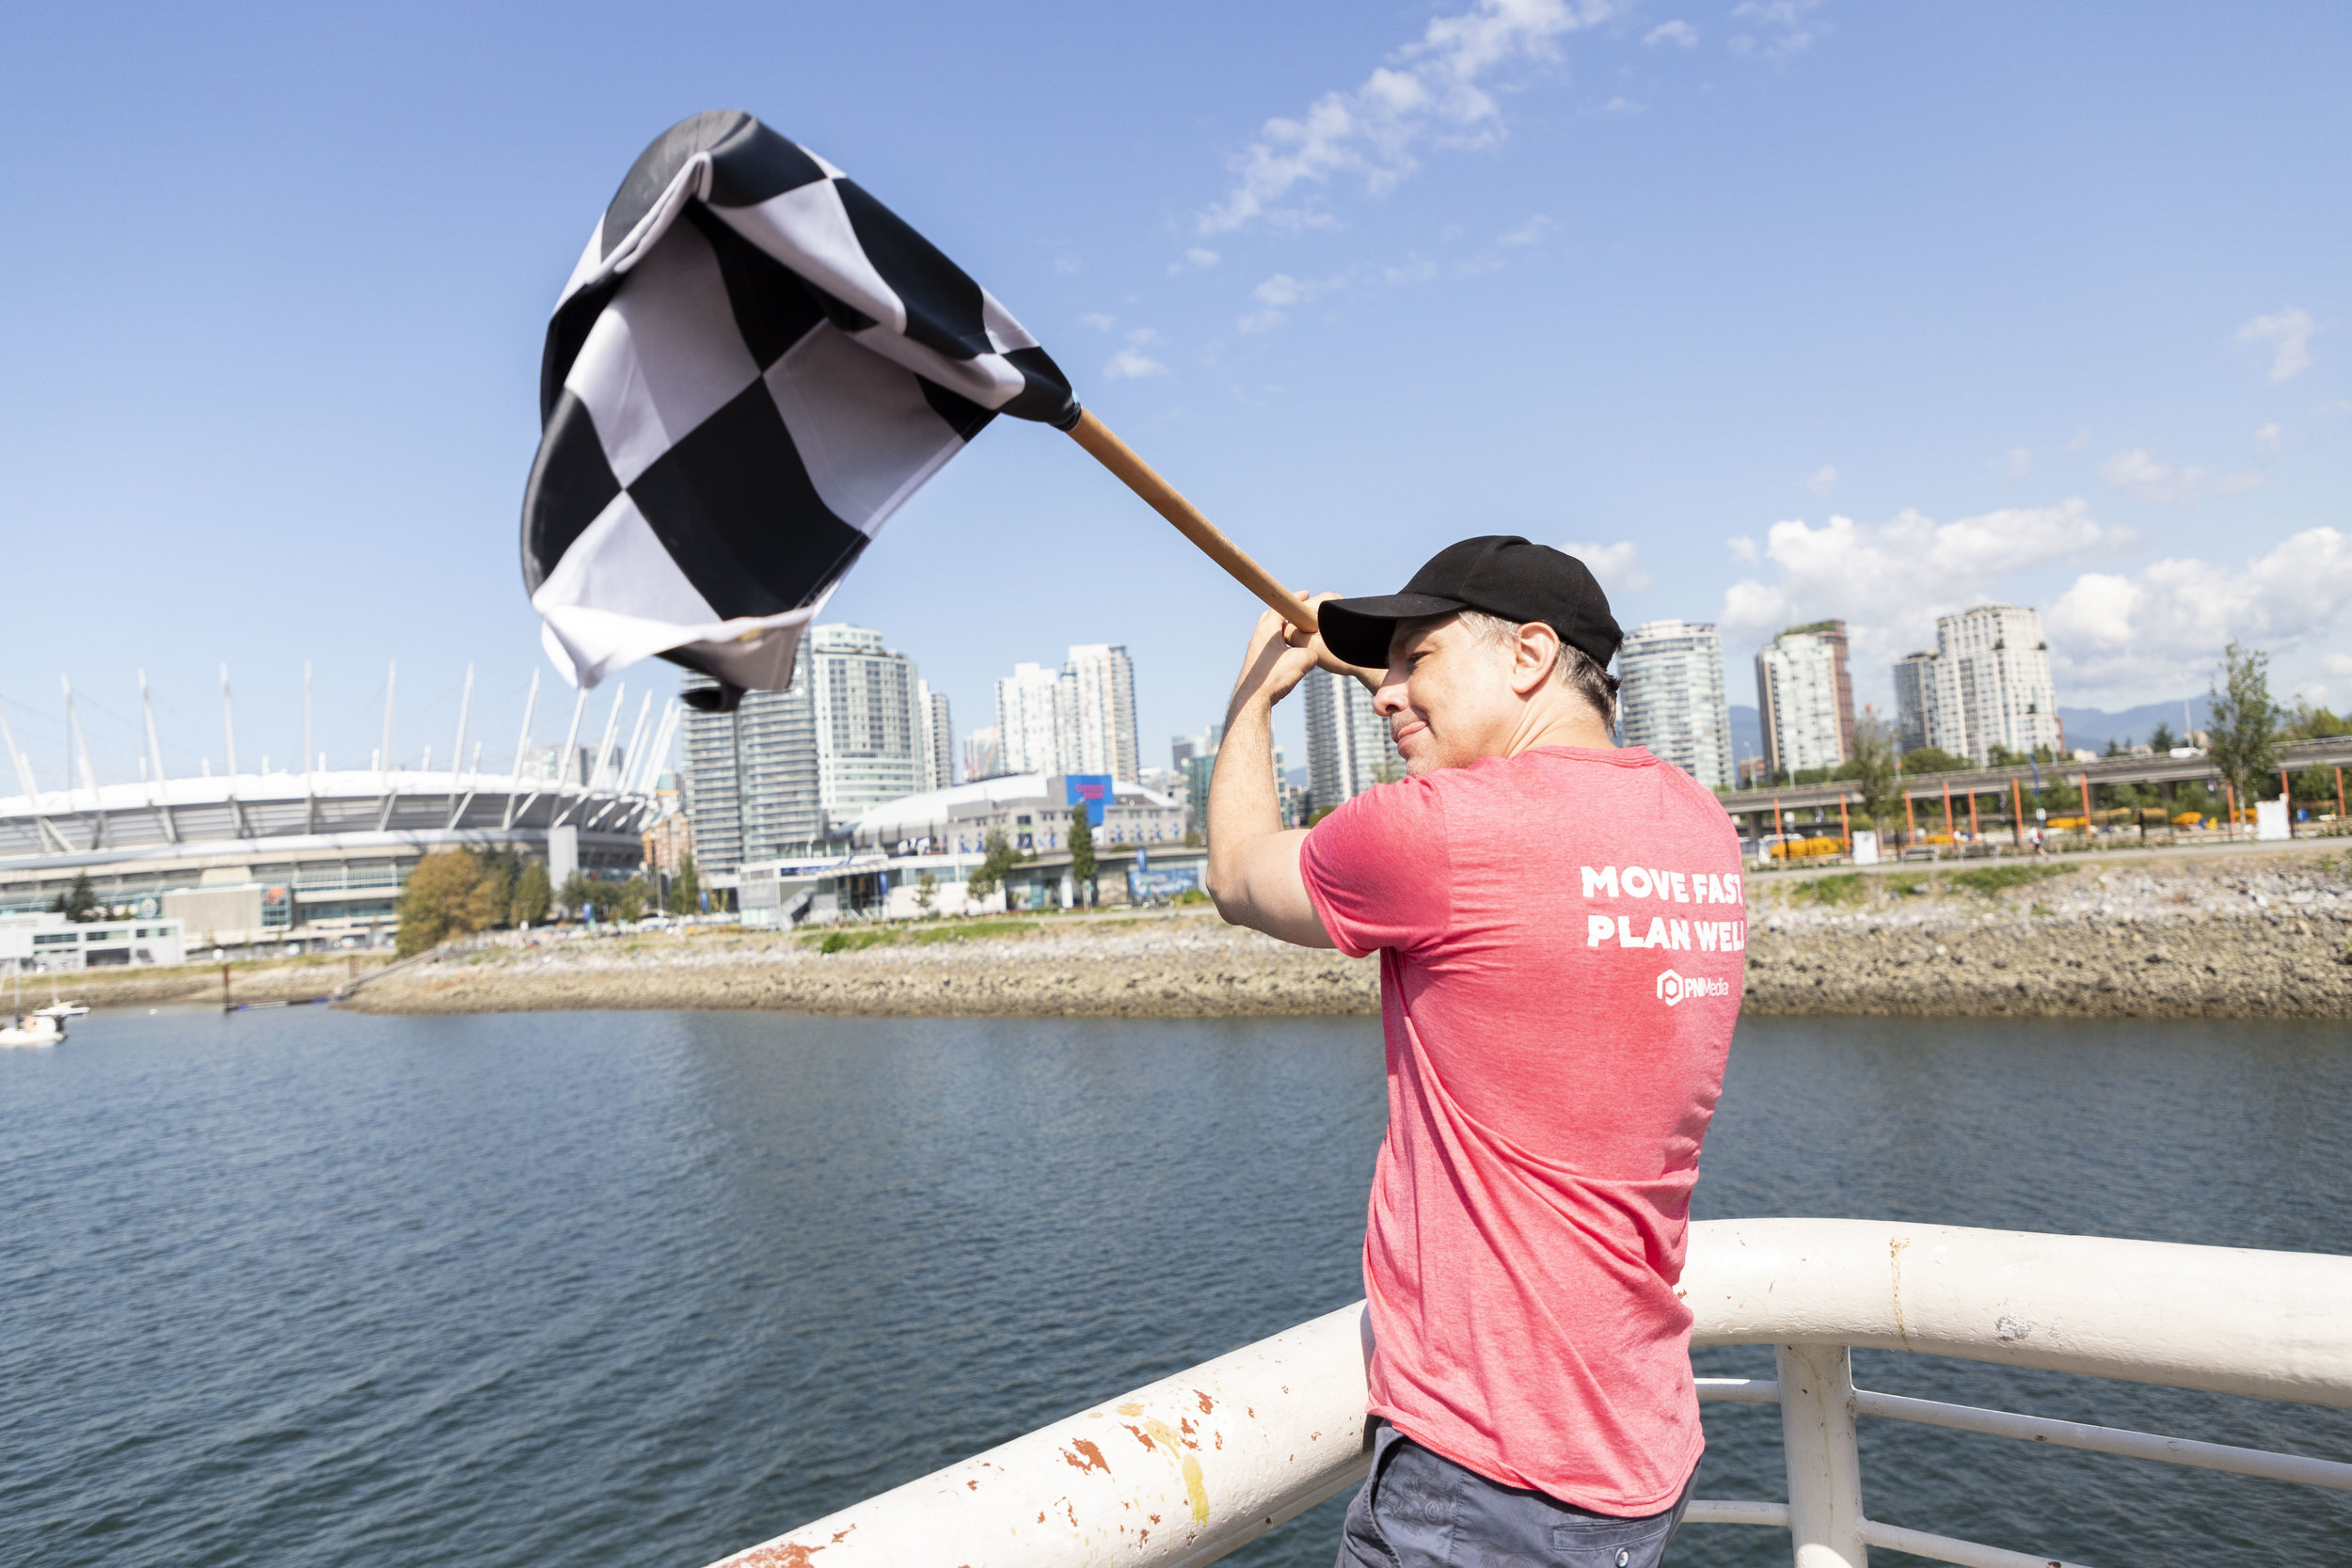 One of Mission and Values Day's organizers, Troy, waves a checkered flag.